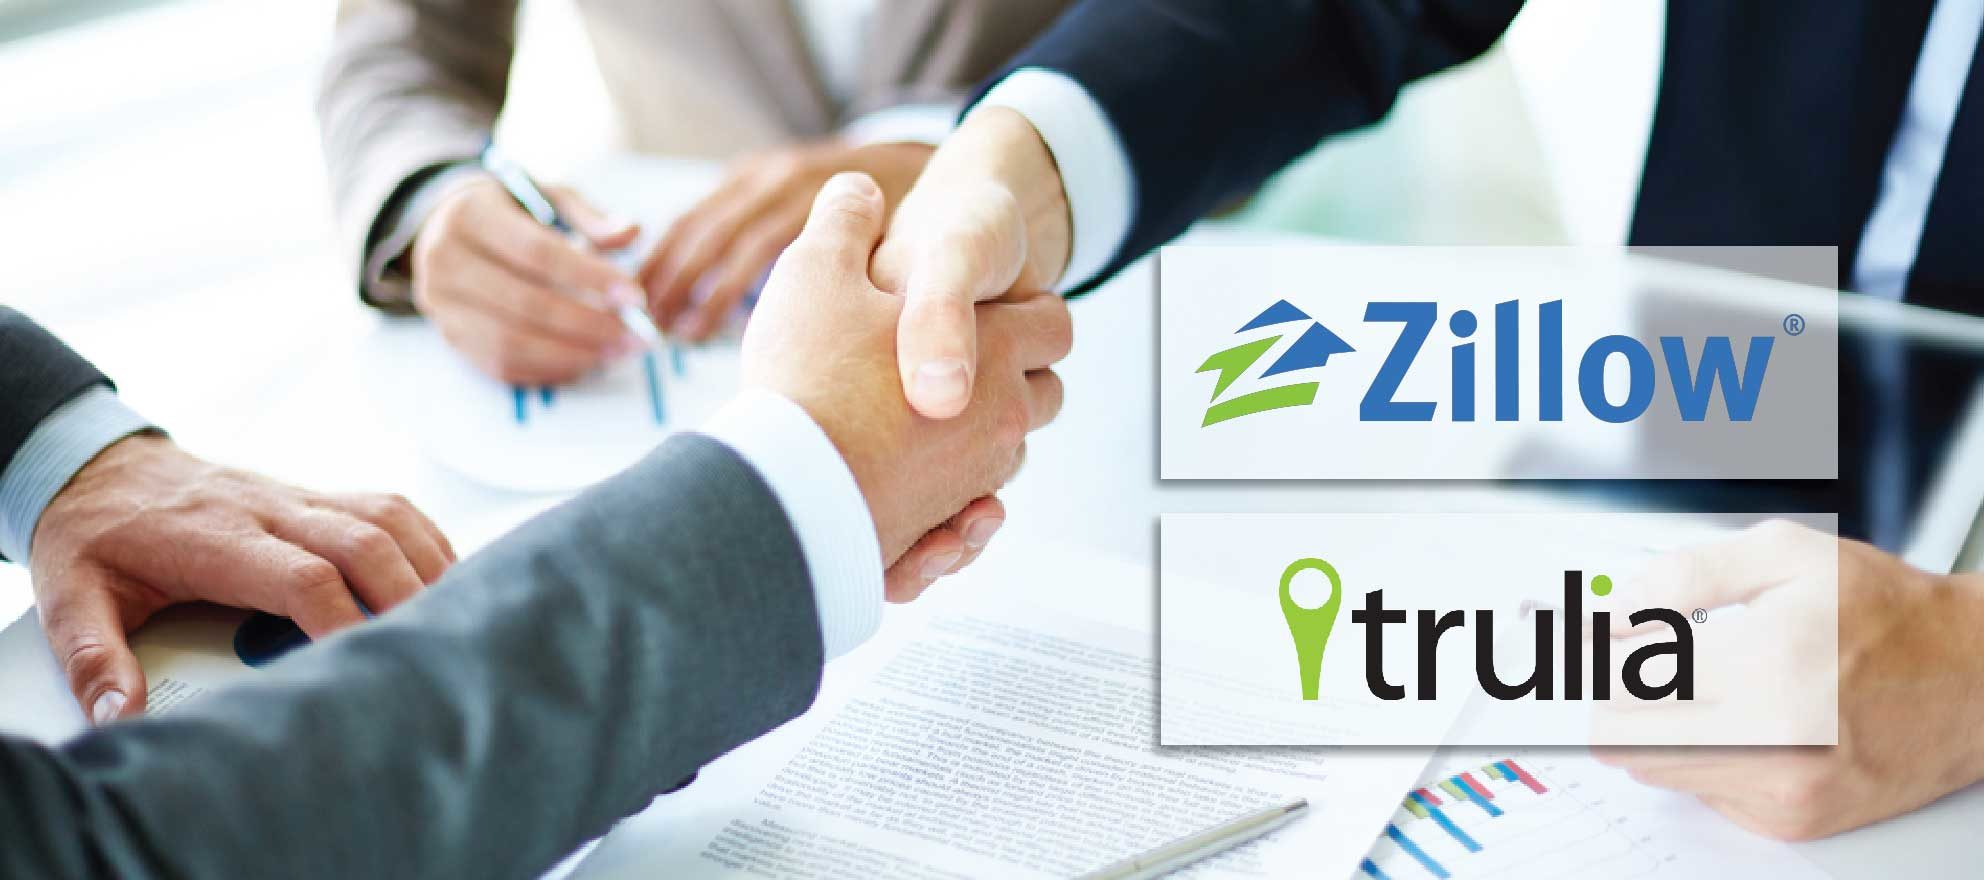 Zillow and Trulia say they're still competitors